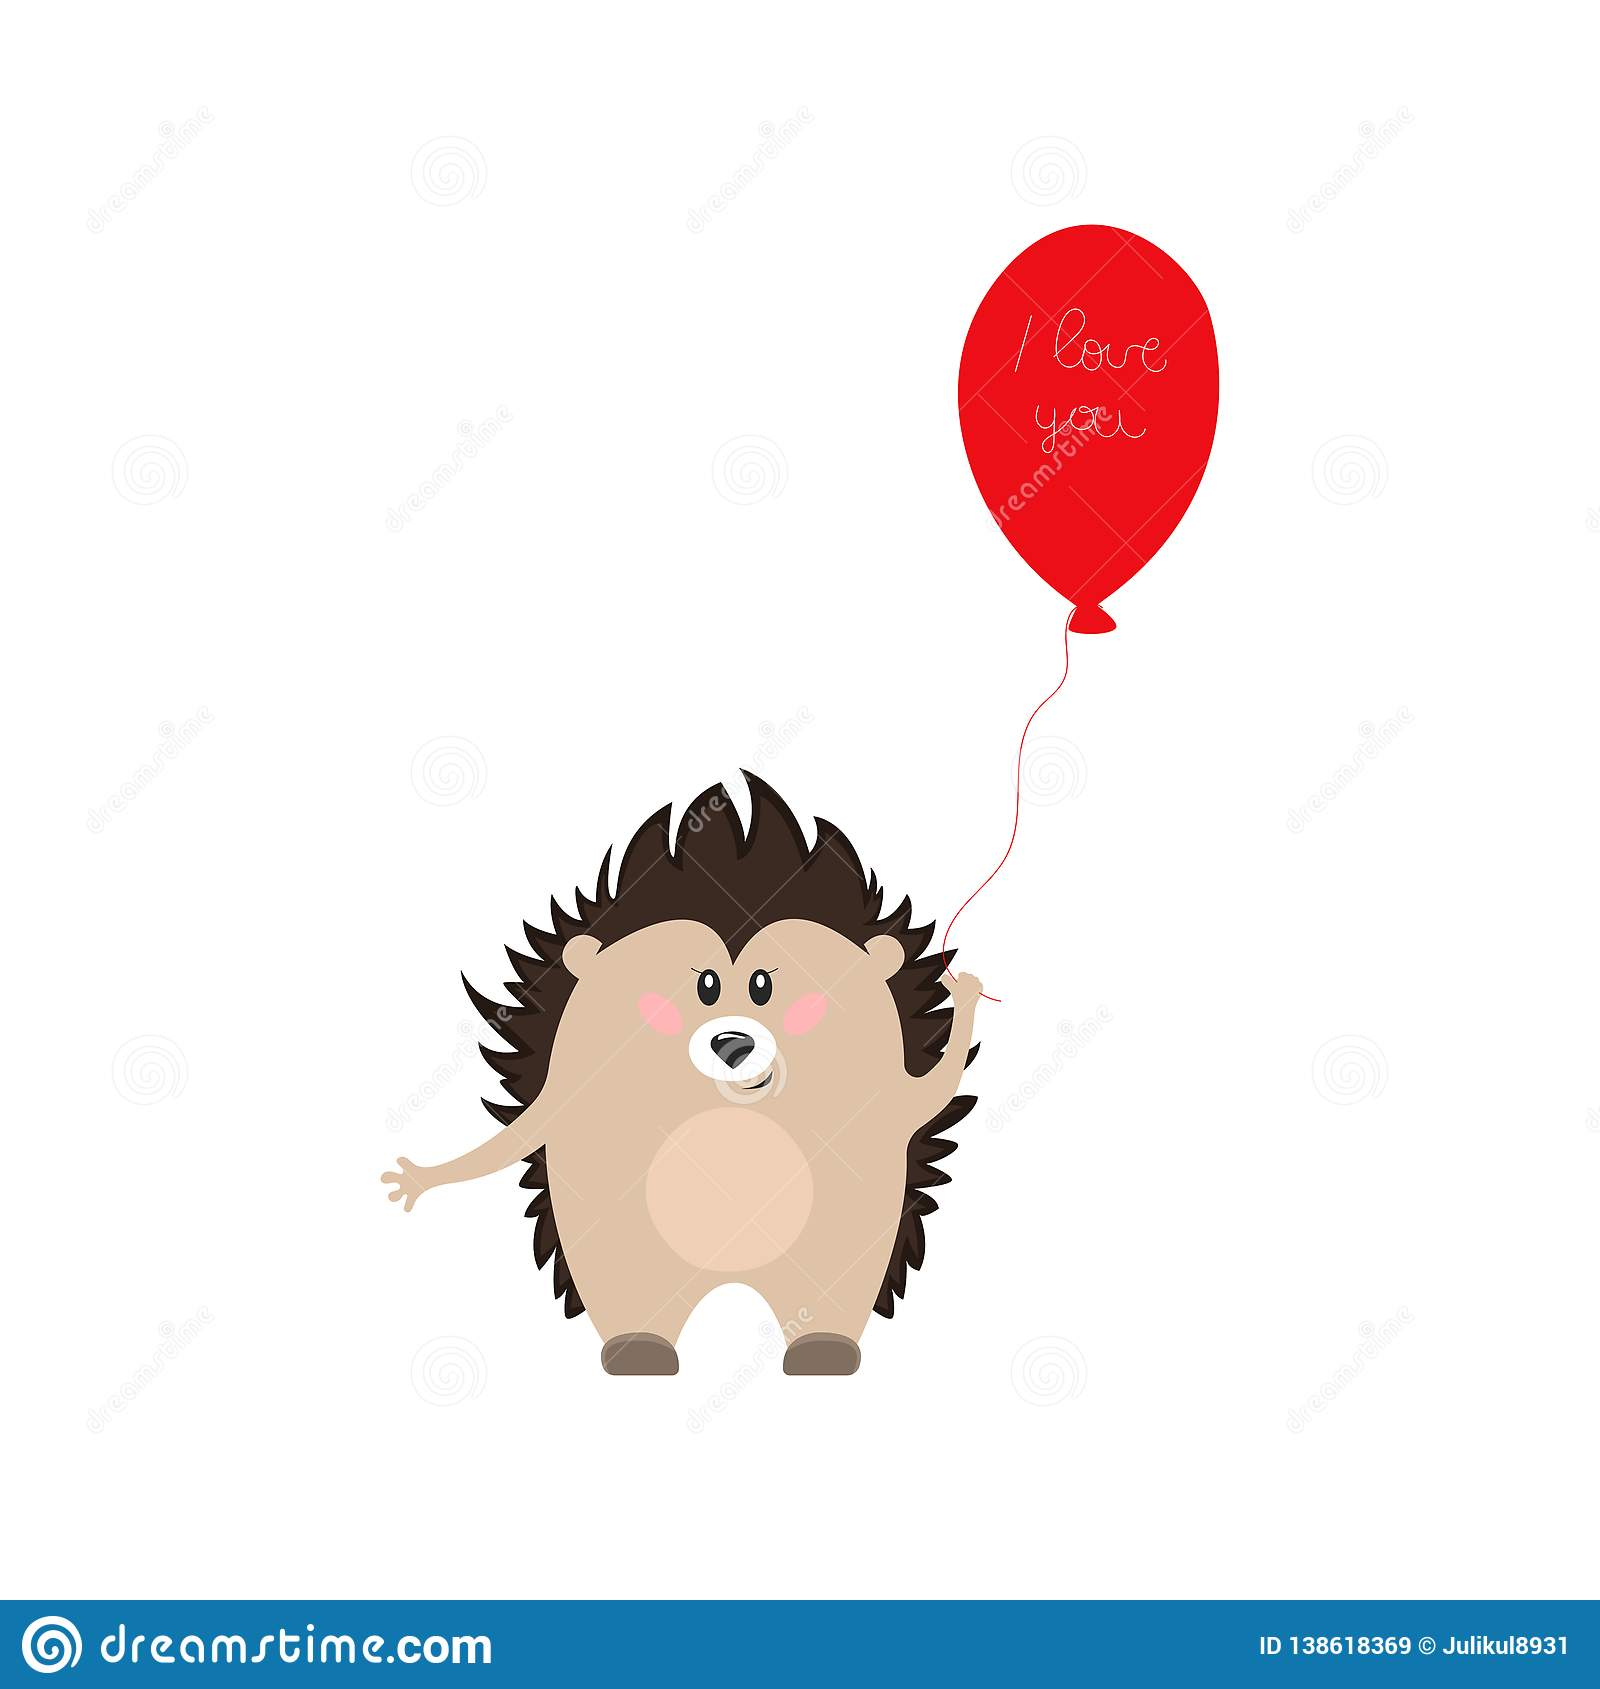 ALUONI 5x3ft Hedgehog Baby Hedgehog Carrying A Heart Bubble and Hand Written You Backdrop for Photography Photo Background Props Photography AM017342